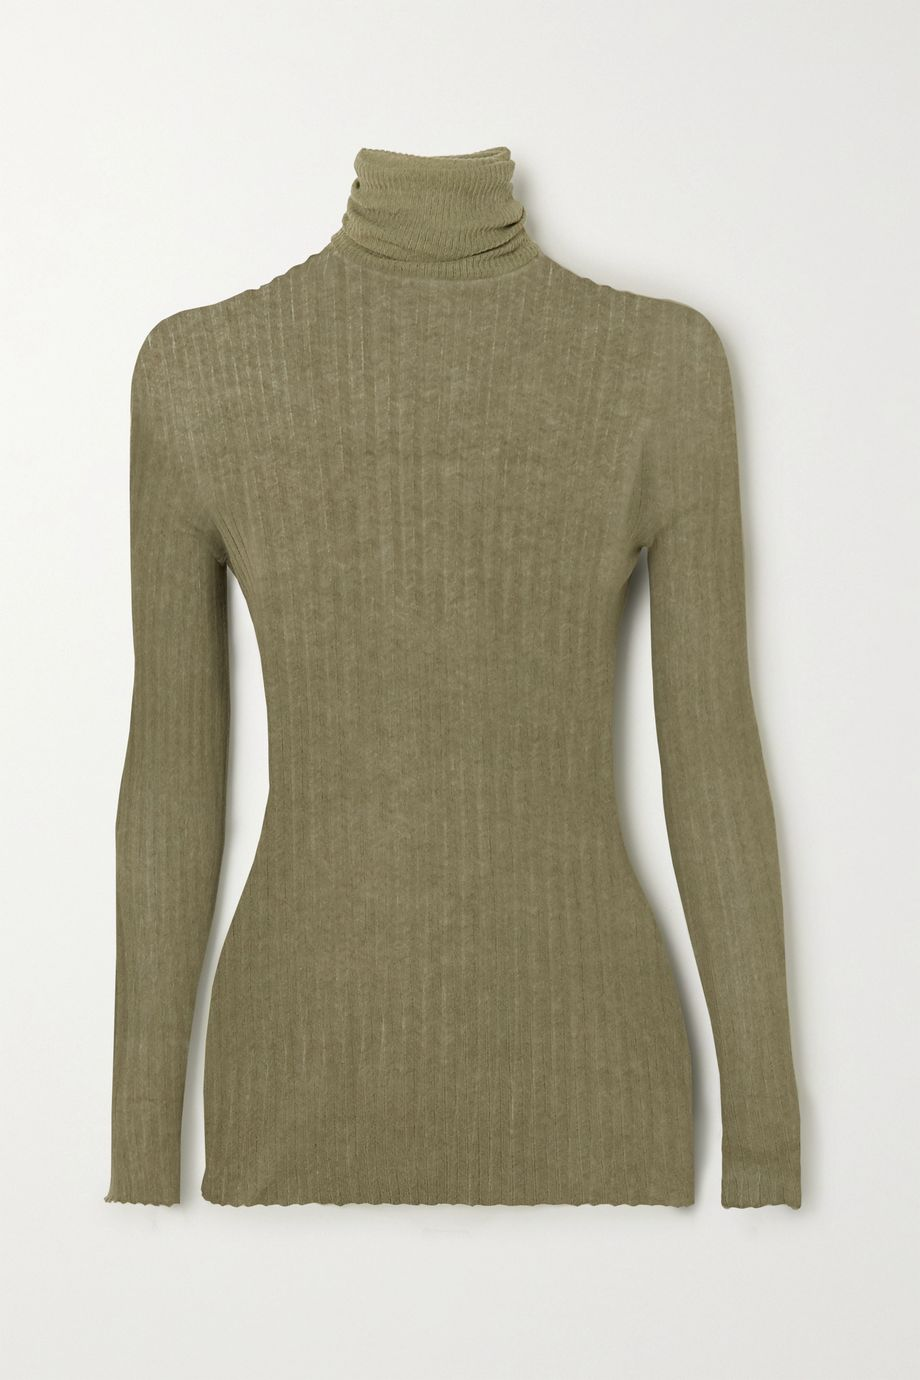 Paris Georgia Ribbed cotton turtleneck sweater